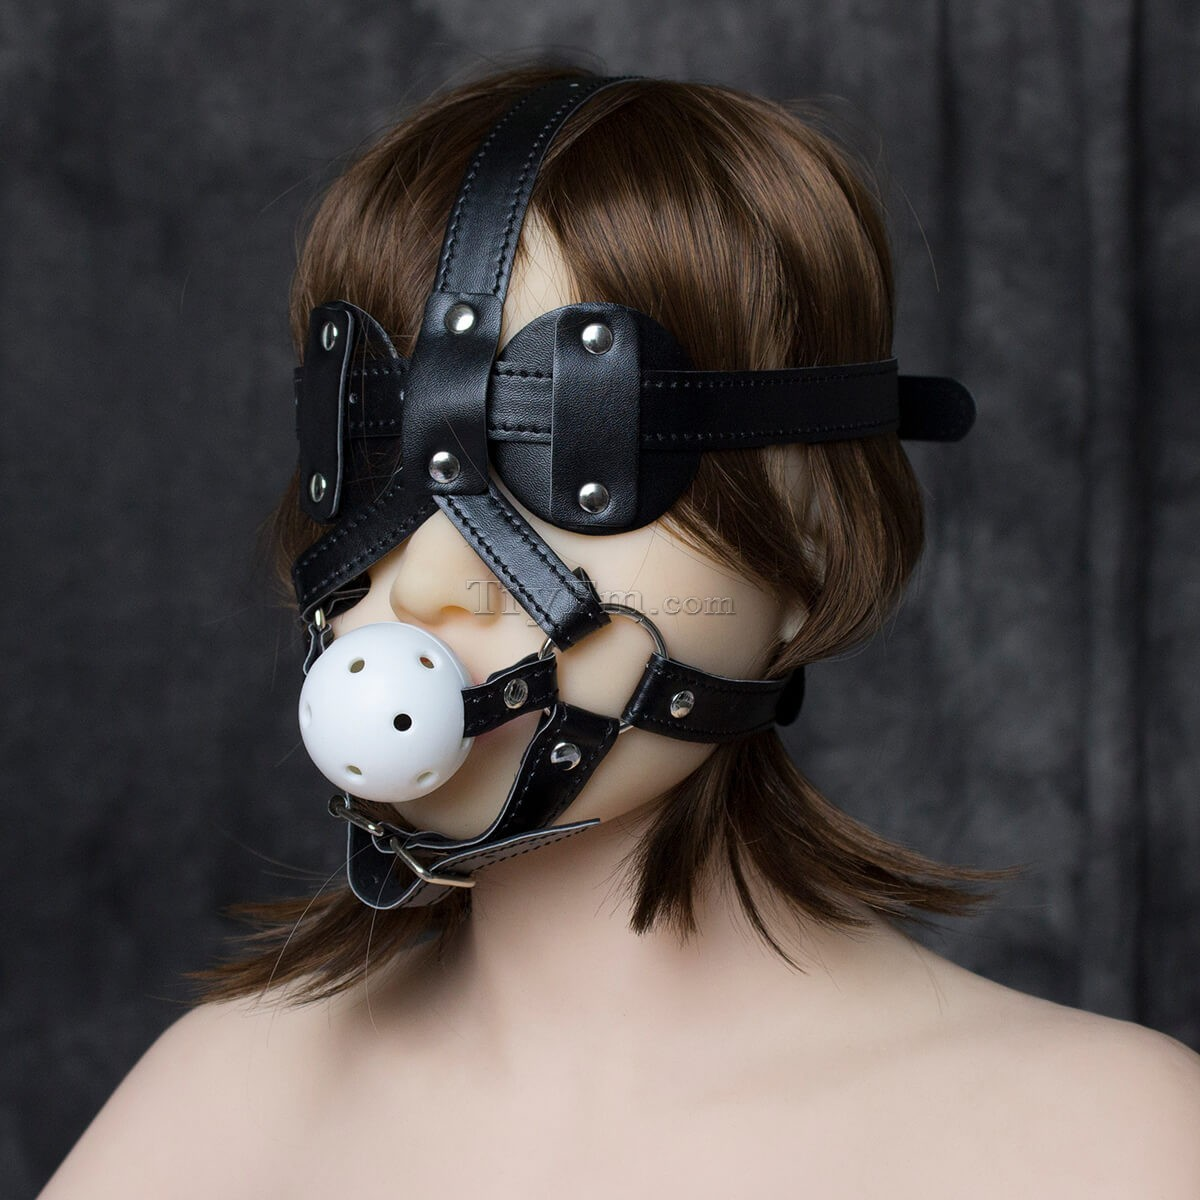 26-Gag-and-Blindfold-Head-Harness-5.jpg